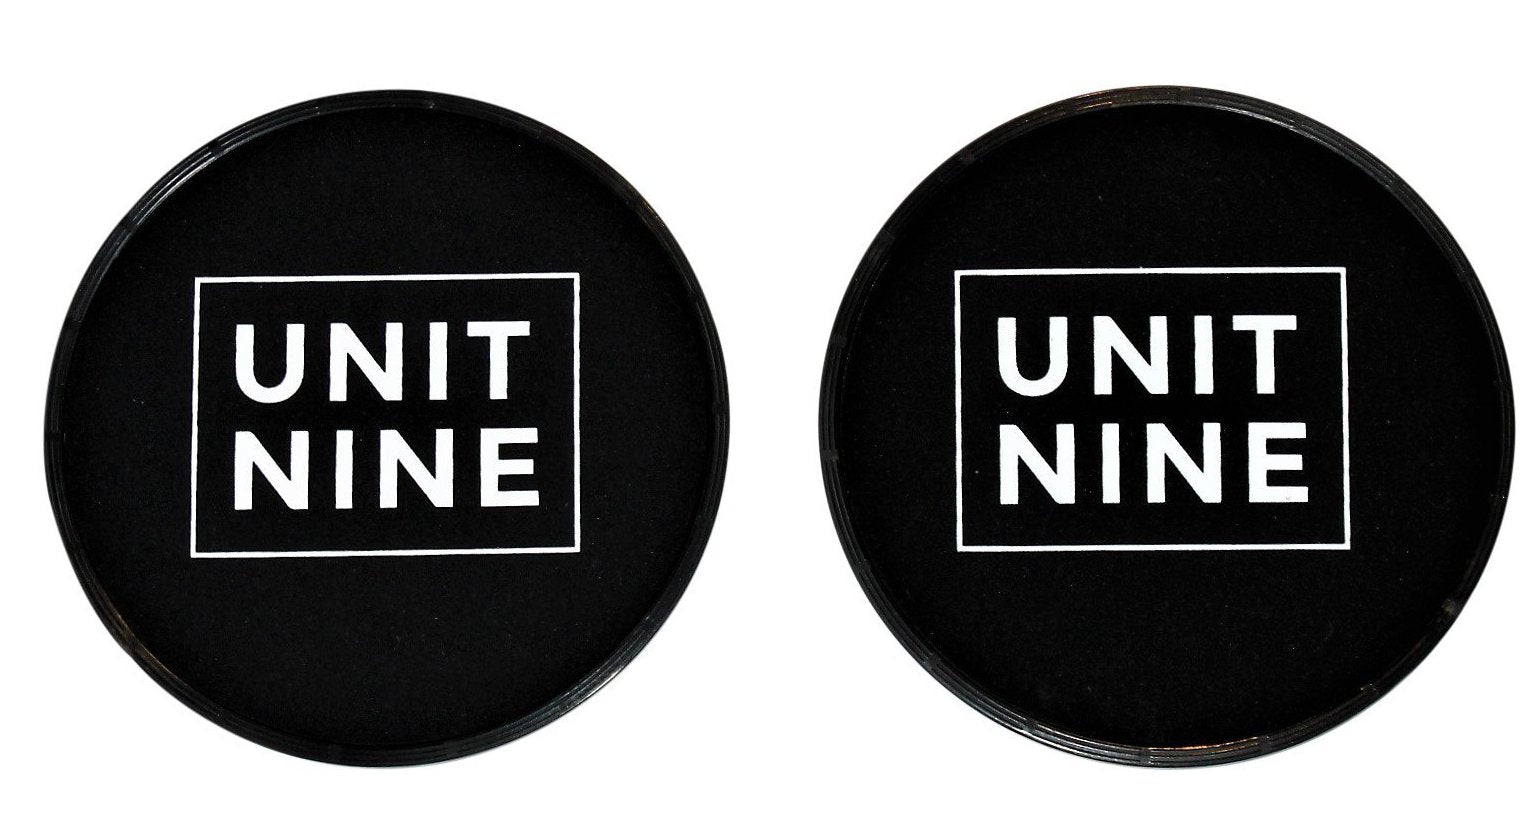 UNIT NINE Sliders